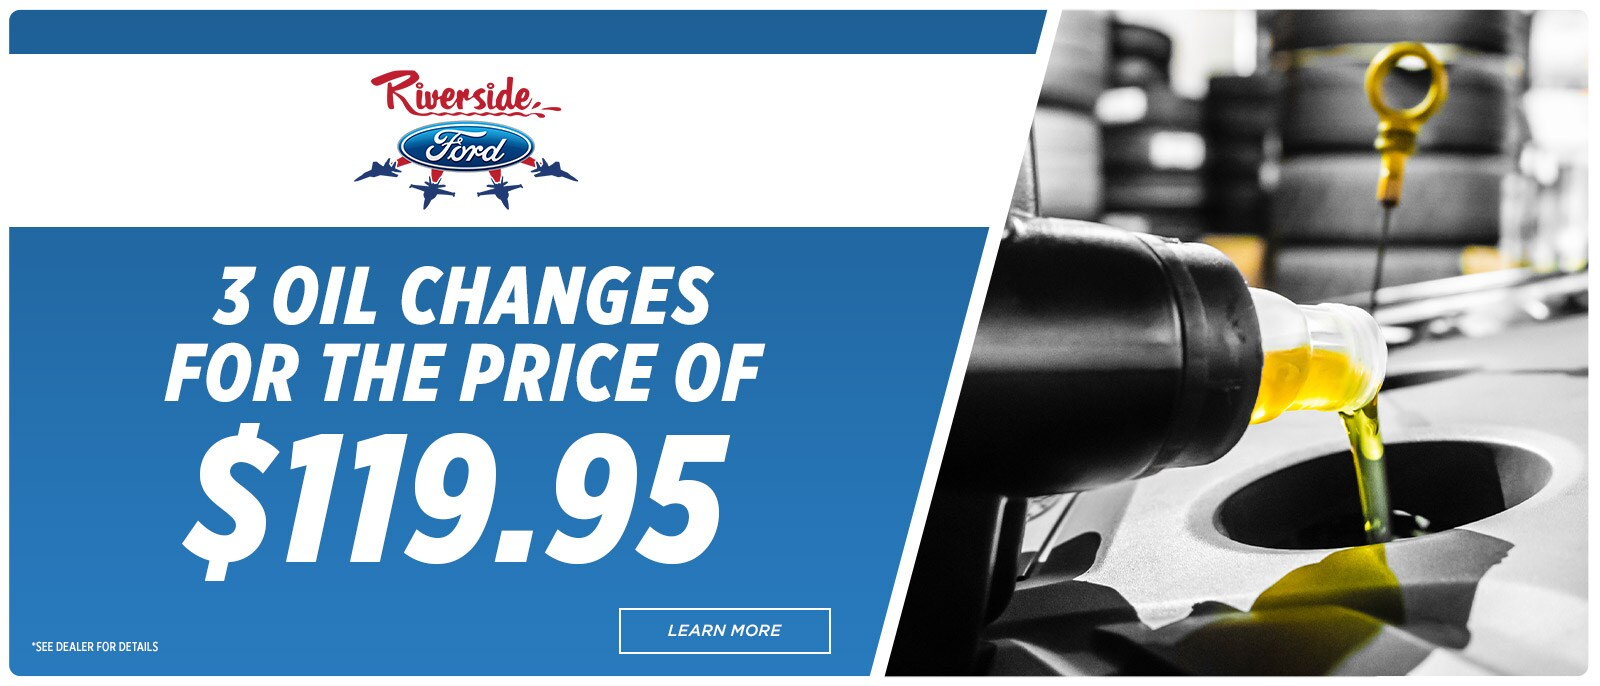 Riverside Ford Service-1600x686 - 3 Oil Changes | Havelock, NC